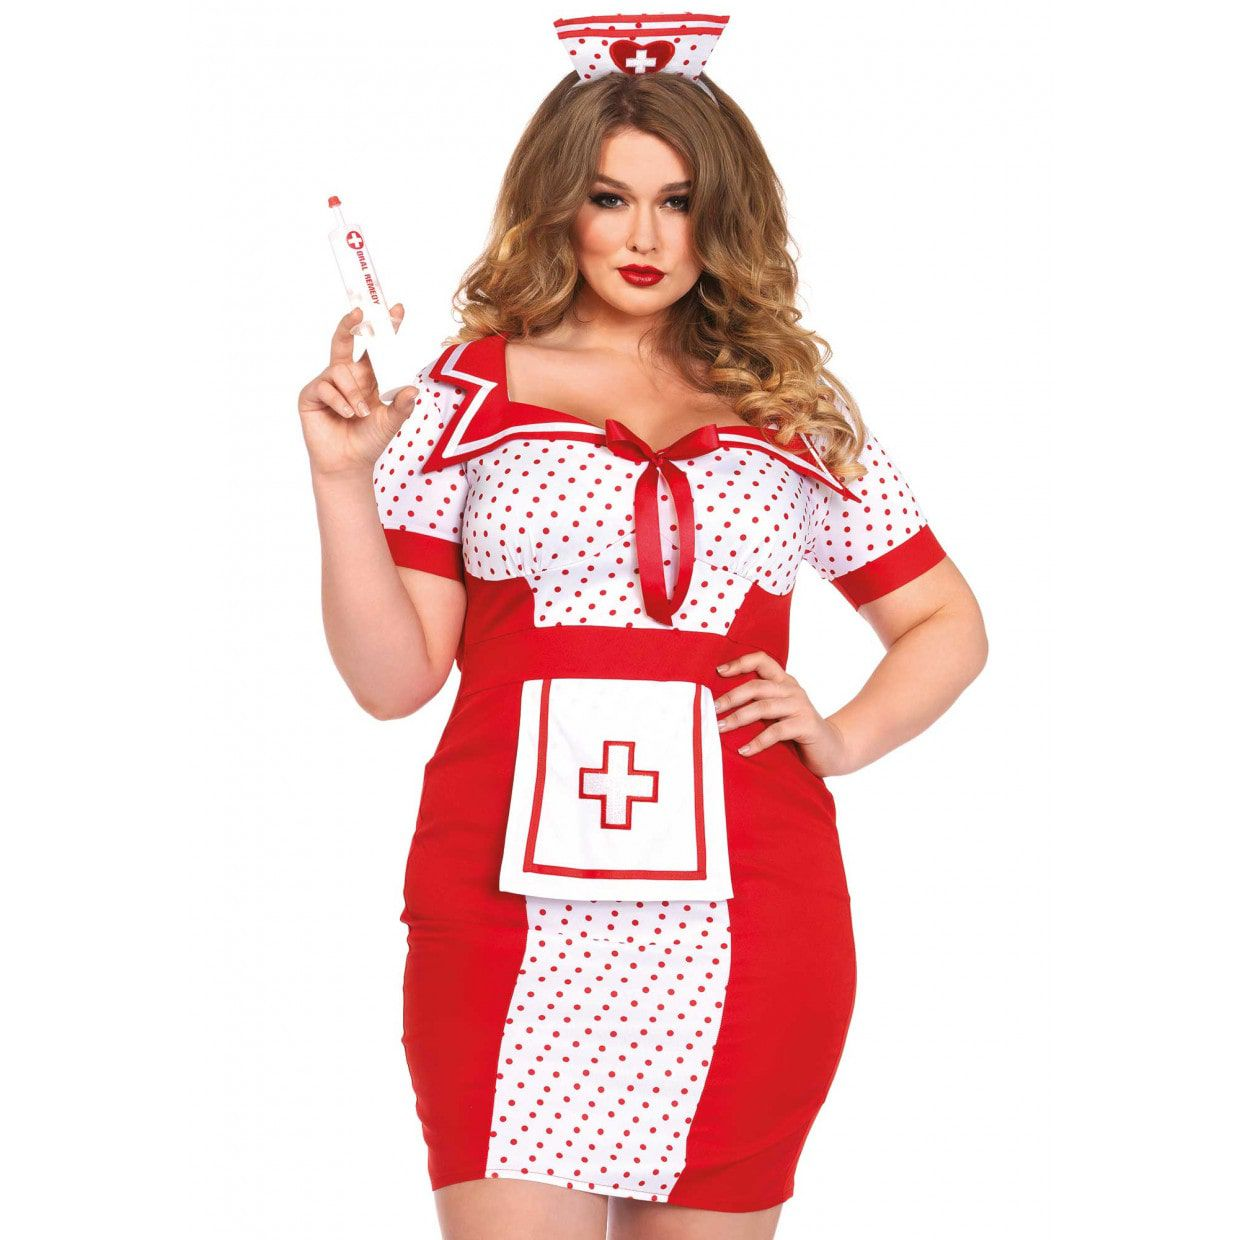 af25158c269168 Wit-Rode Zorgzame Verpleegster Jurk (Plus Size) Vrouw